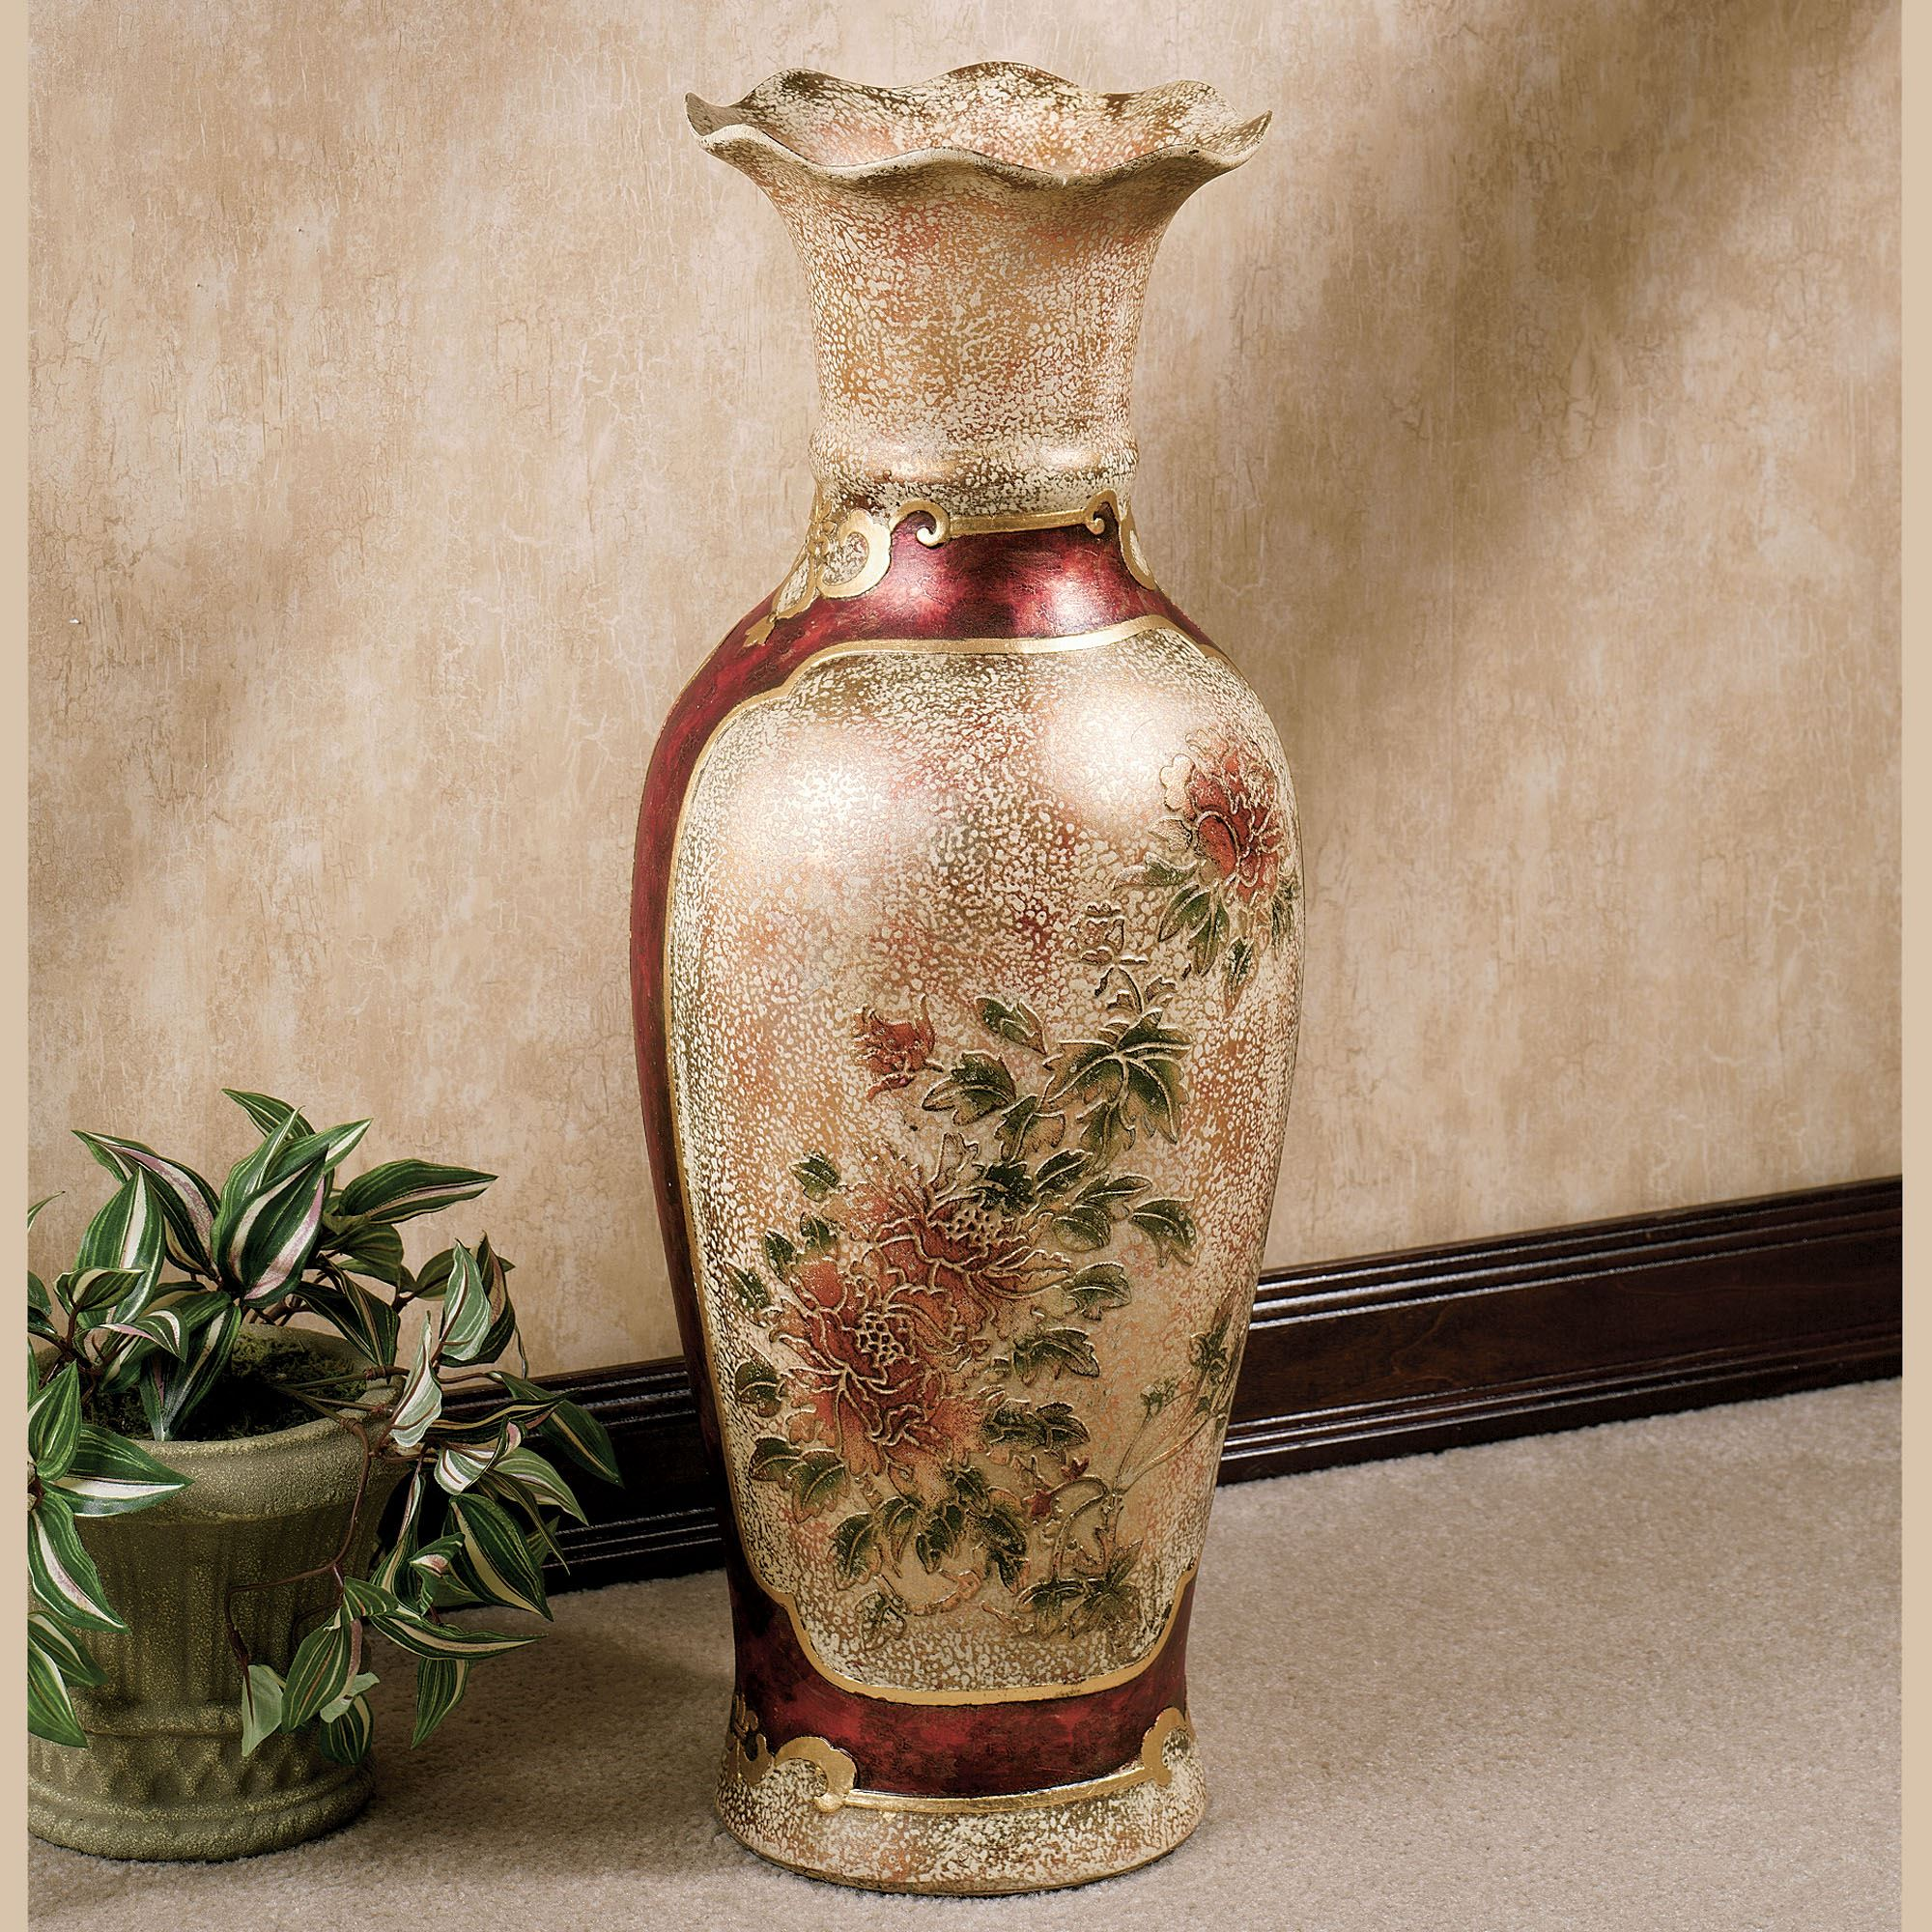 Table vases floor vases decorative jars touch of class elysian blooming floor vase reviewsmspy